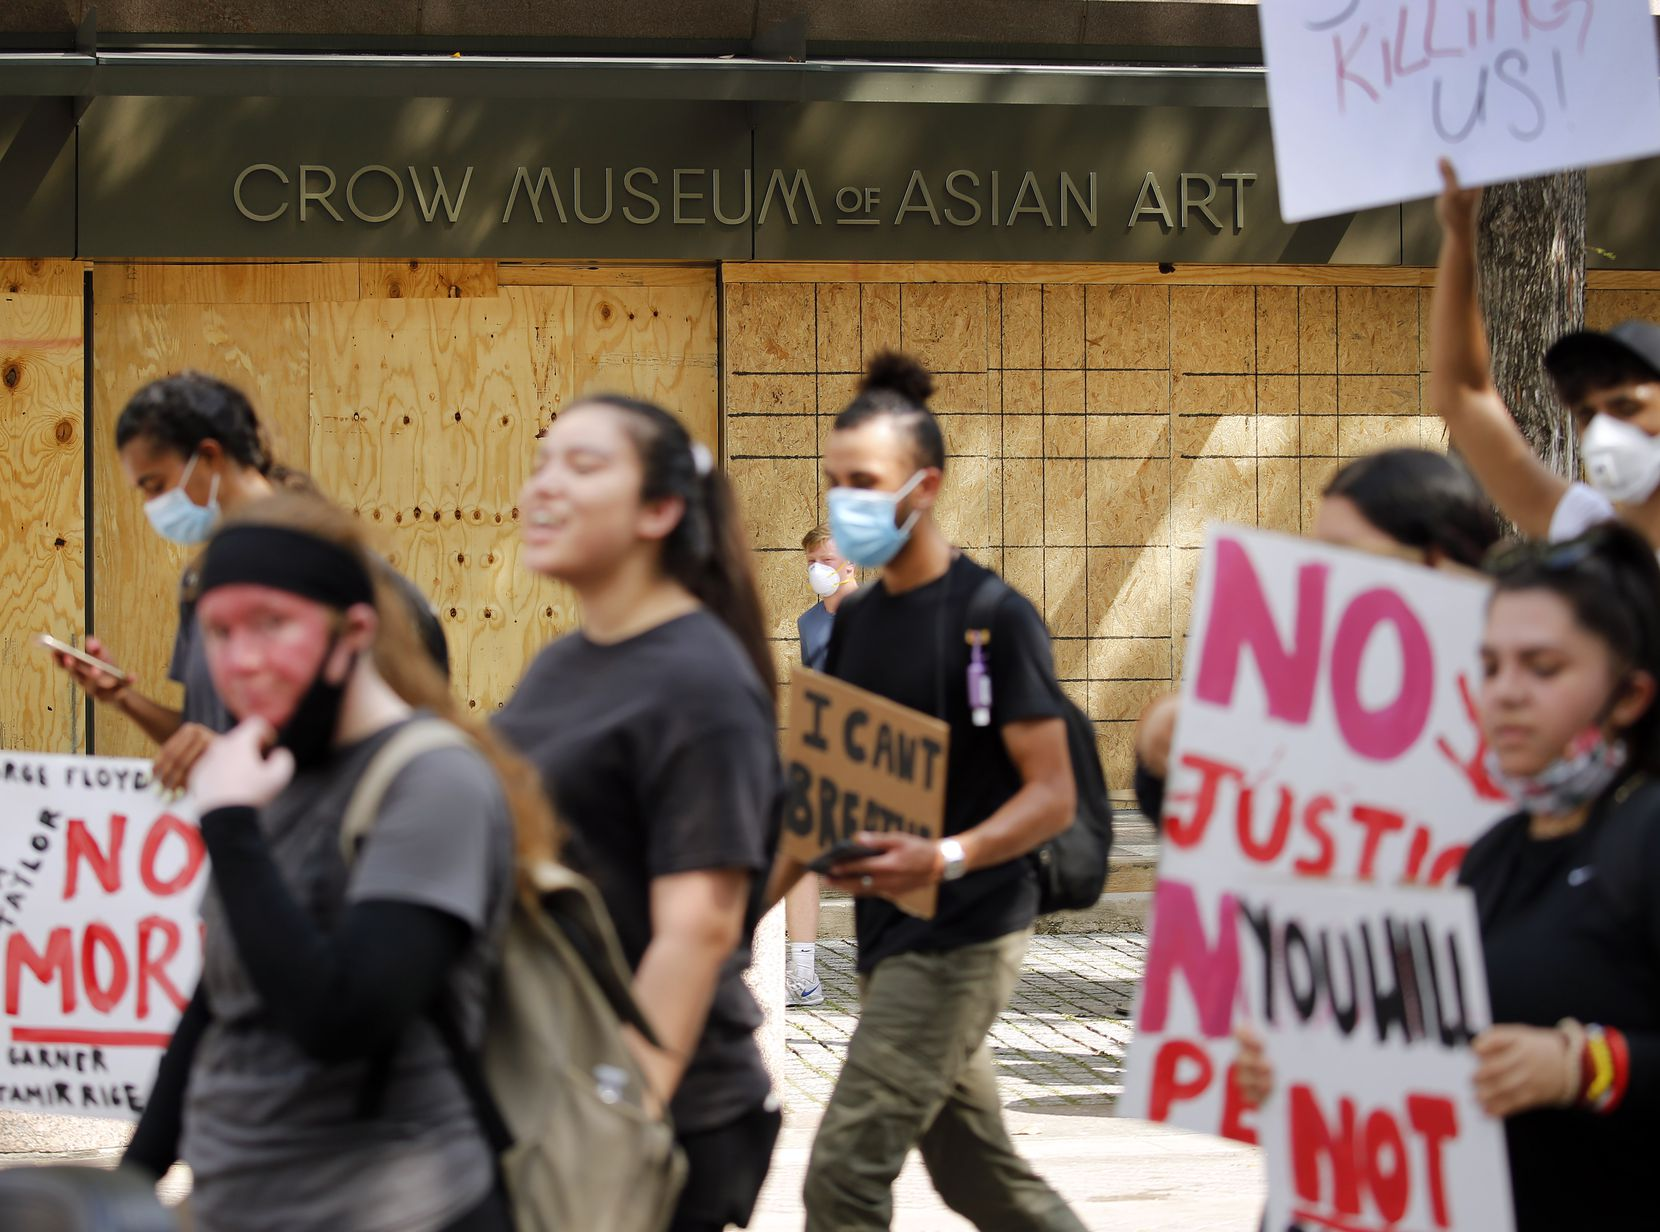 Protestors supporting Black Lives Matters march past the boarded up Crow Museum of Asian Art in the Arts District of downtown Dallas, Tuesday, June 2, 2020.